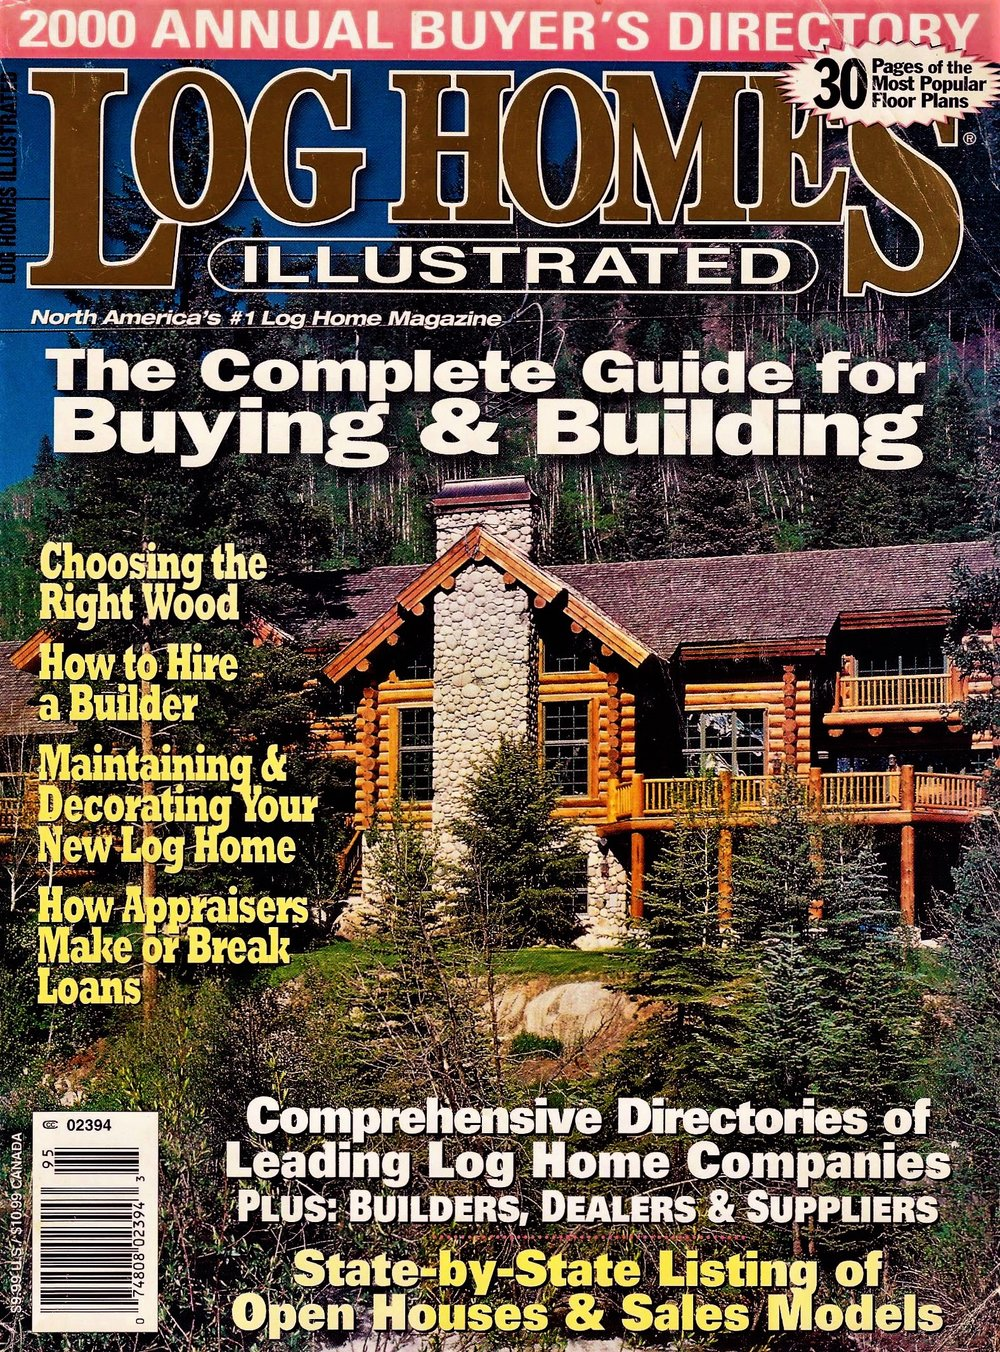 Log home cover .1.jpg